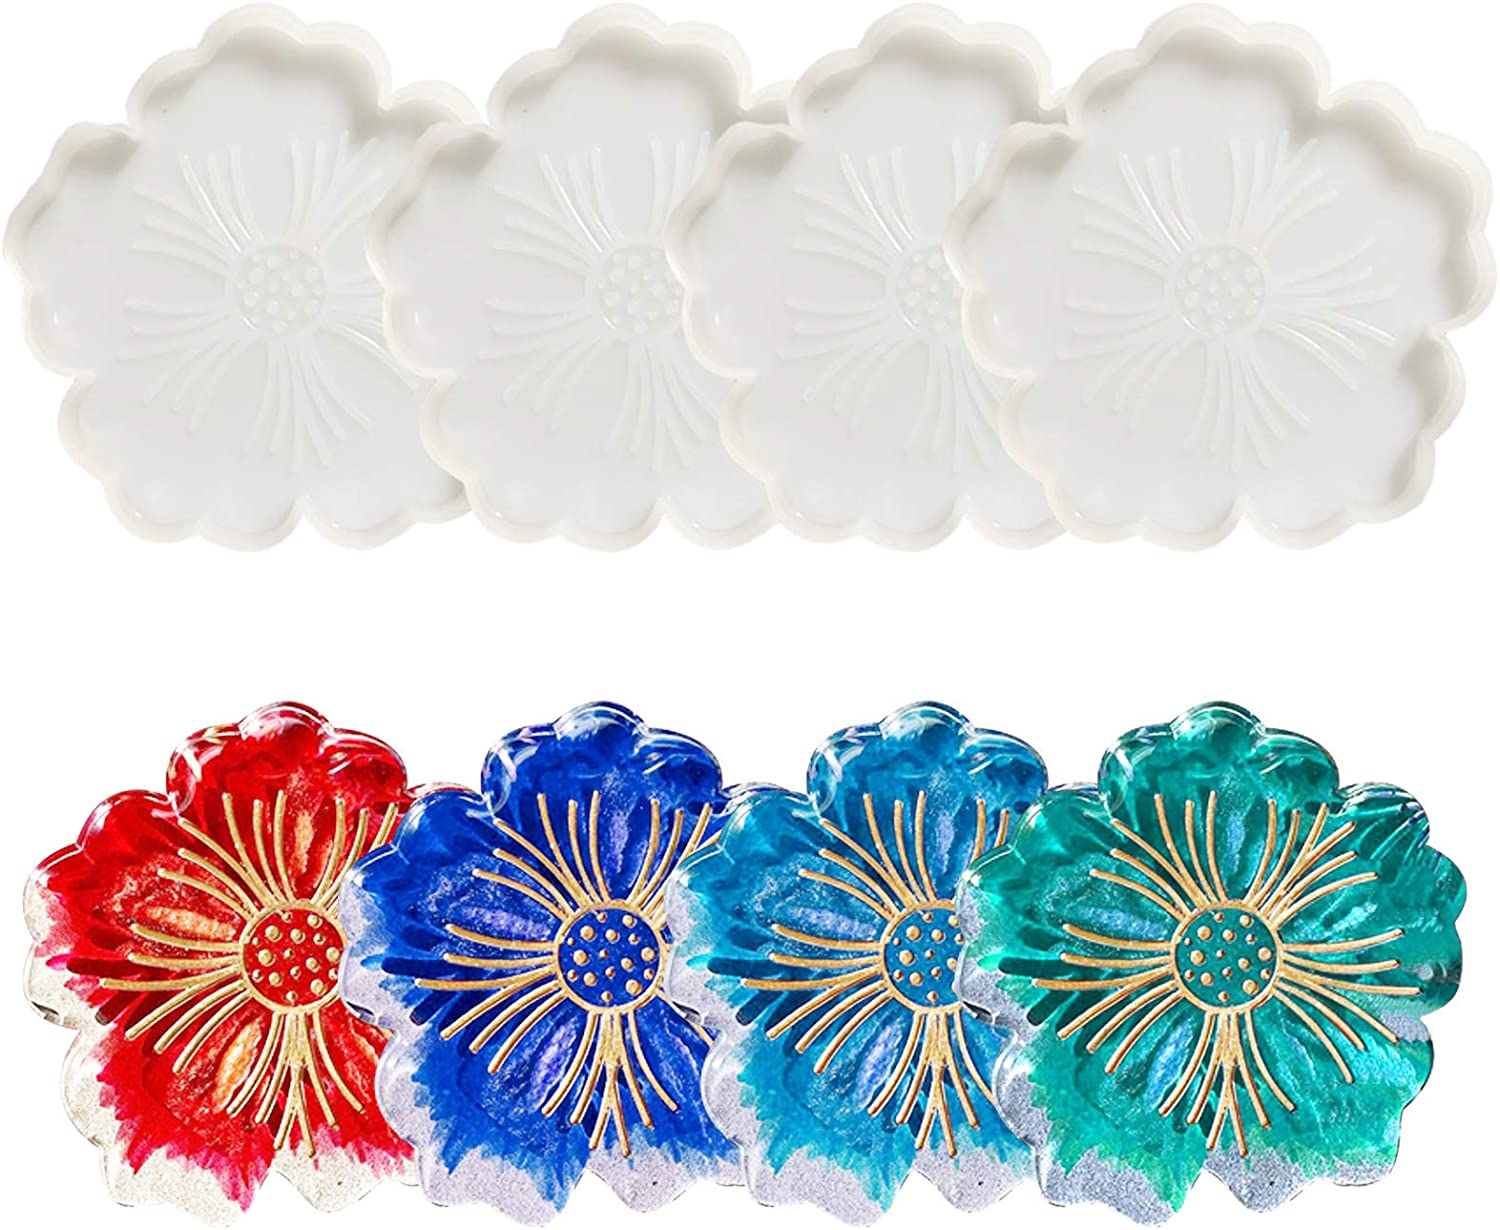 ORNOOU 6 Pieces Large Silicone Flower Coaster Resin Casting Making Mold Resin Coaster Molds Agate Coaster Epoxy Molds